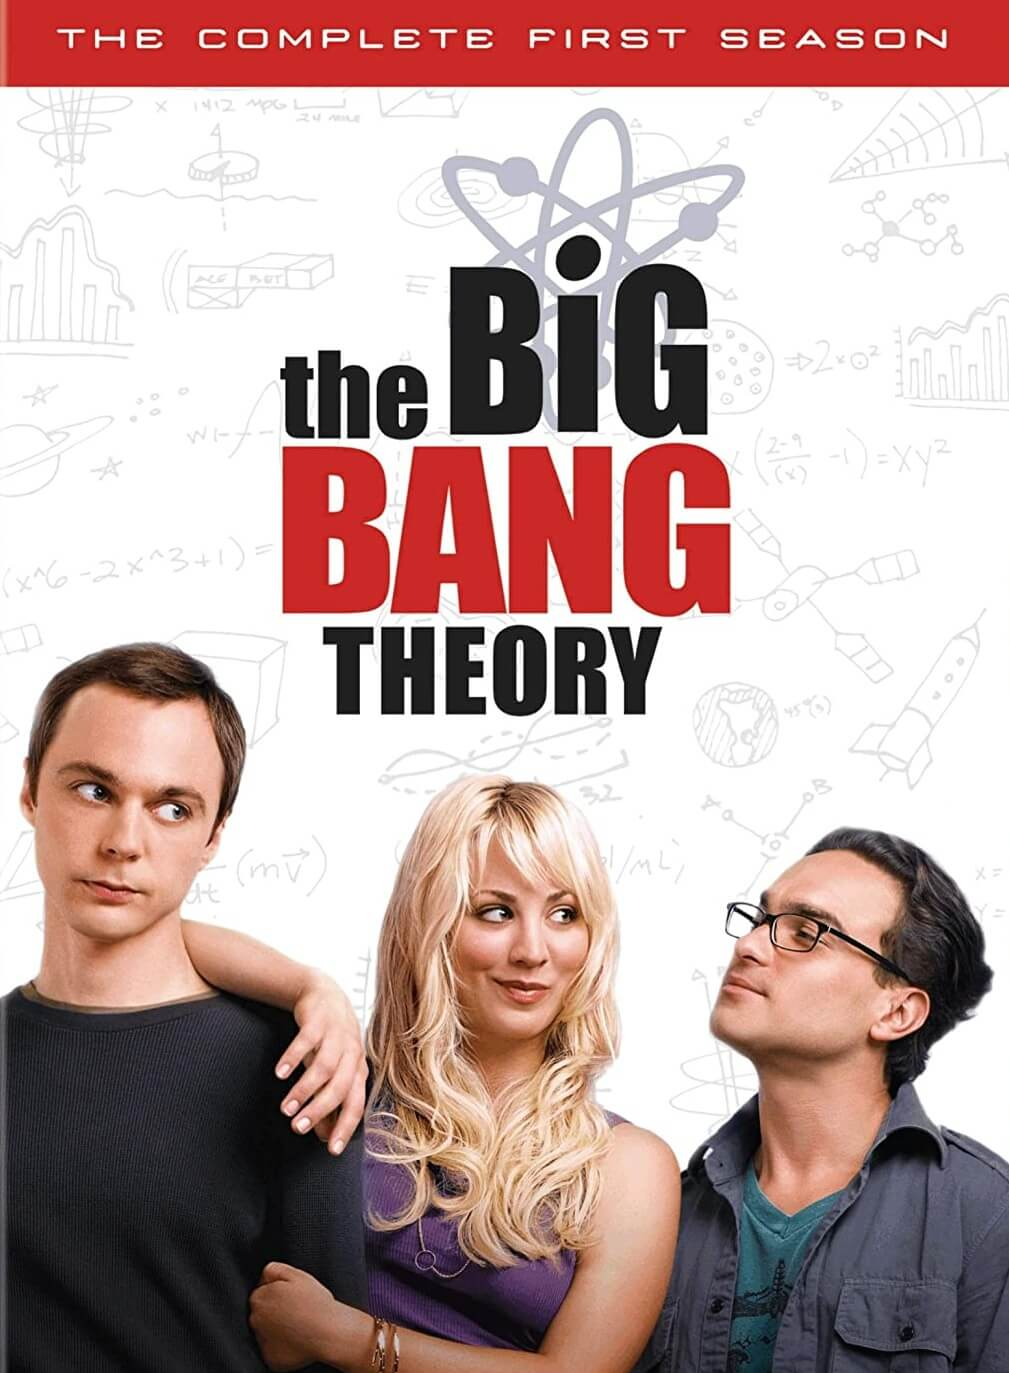 The Big Bang Theory S01 E01